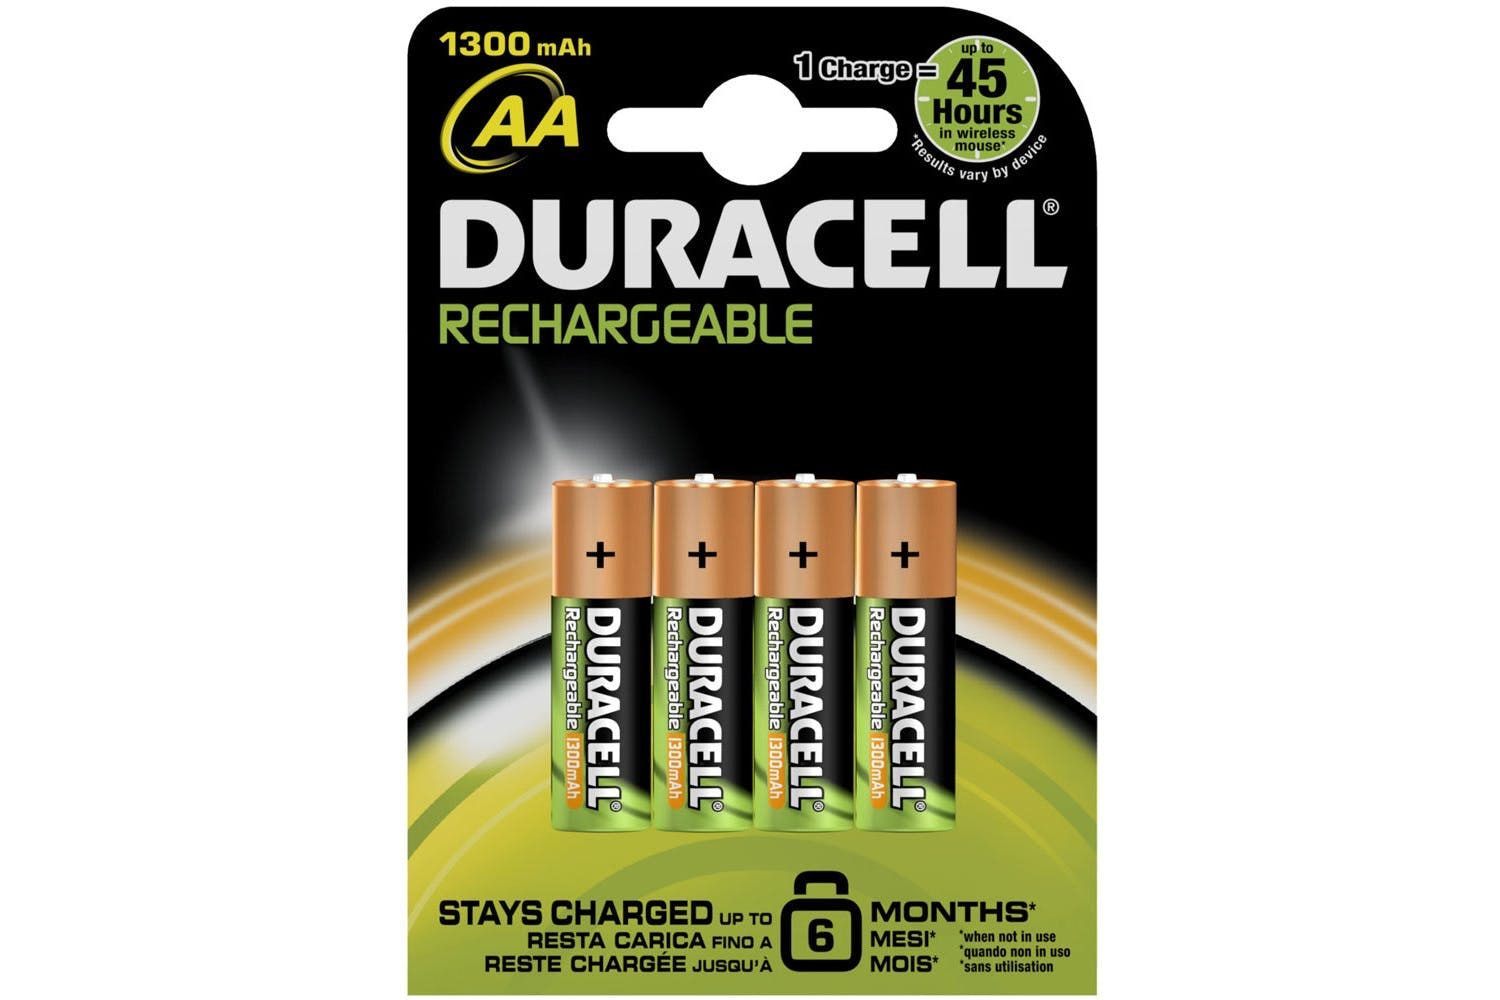 Duracell Rechargeable AA Batteries | 4 Pack